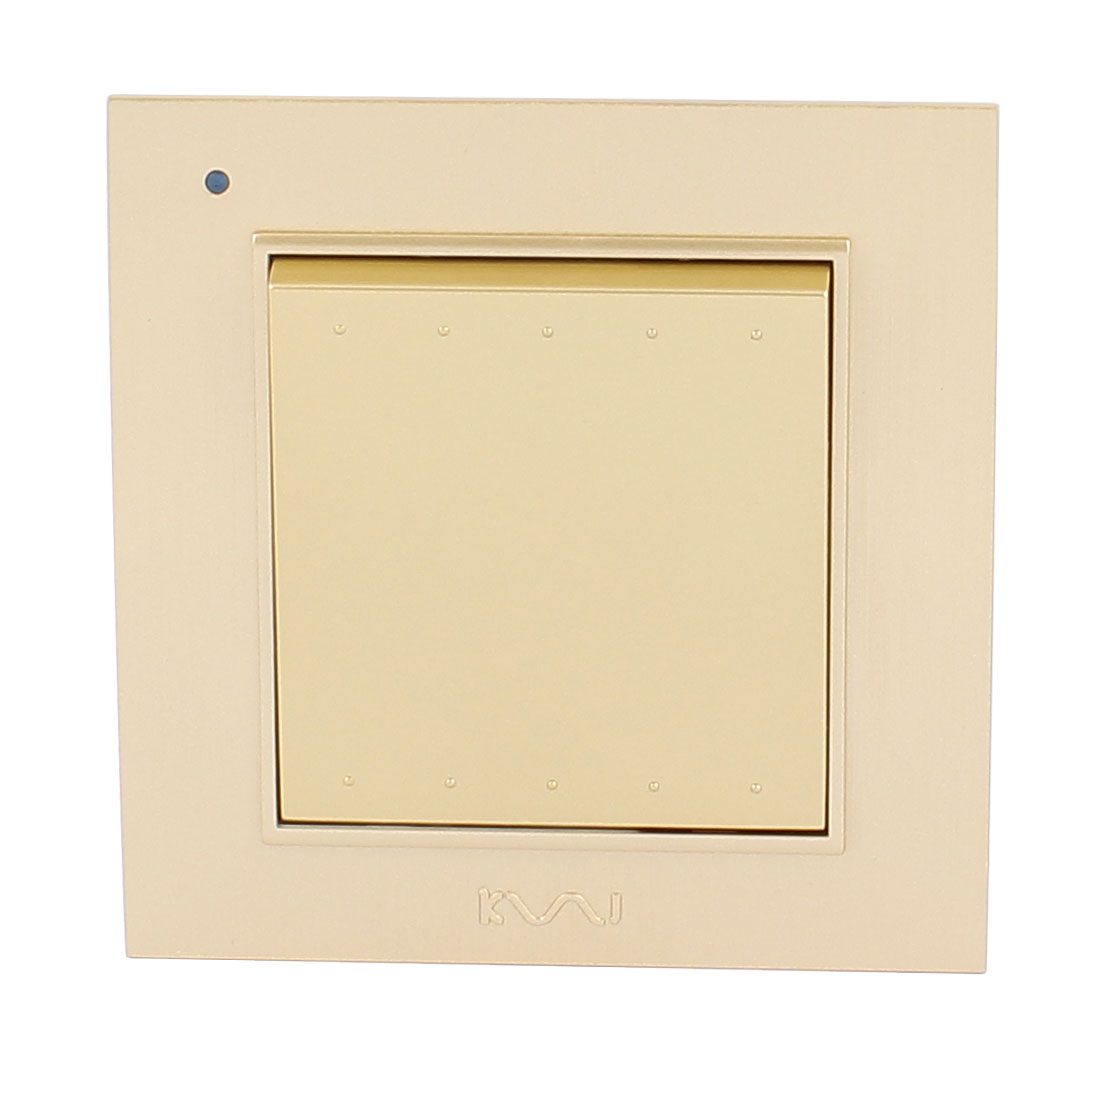 AC 250V 10A 1 Gang 1 way On/Off Press Button Plastic Housing Wall Switch Gold